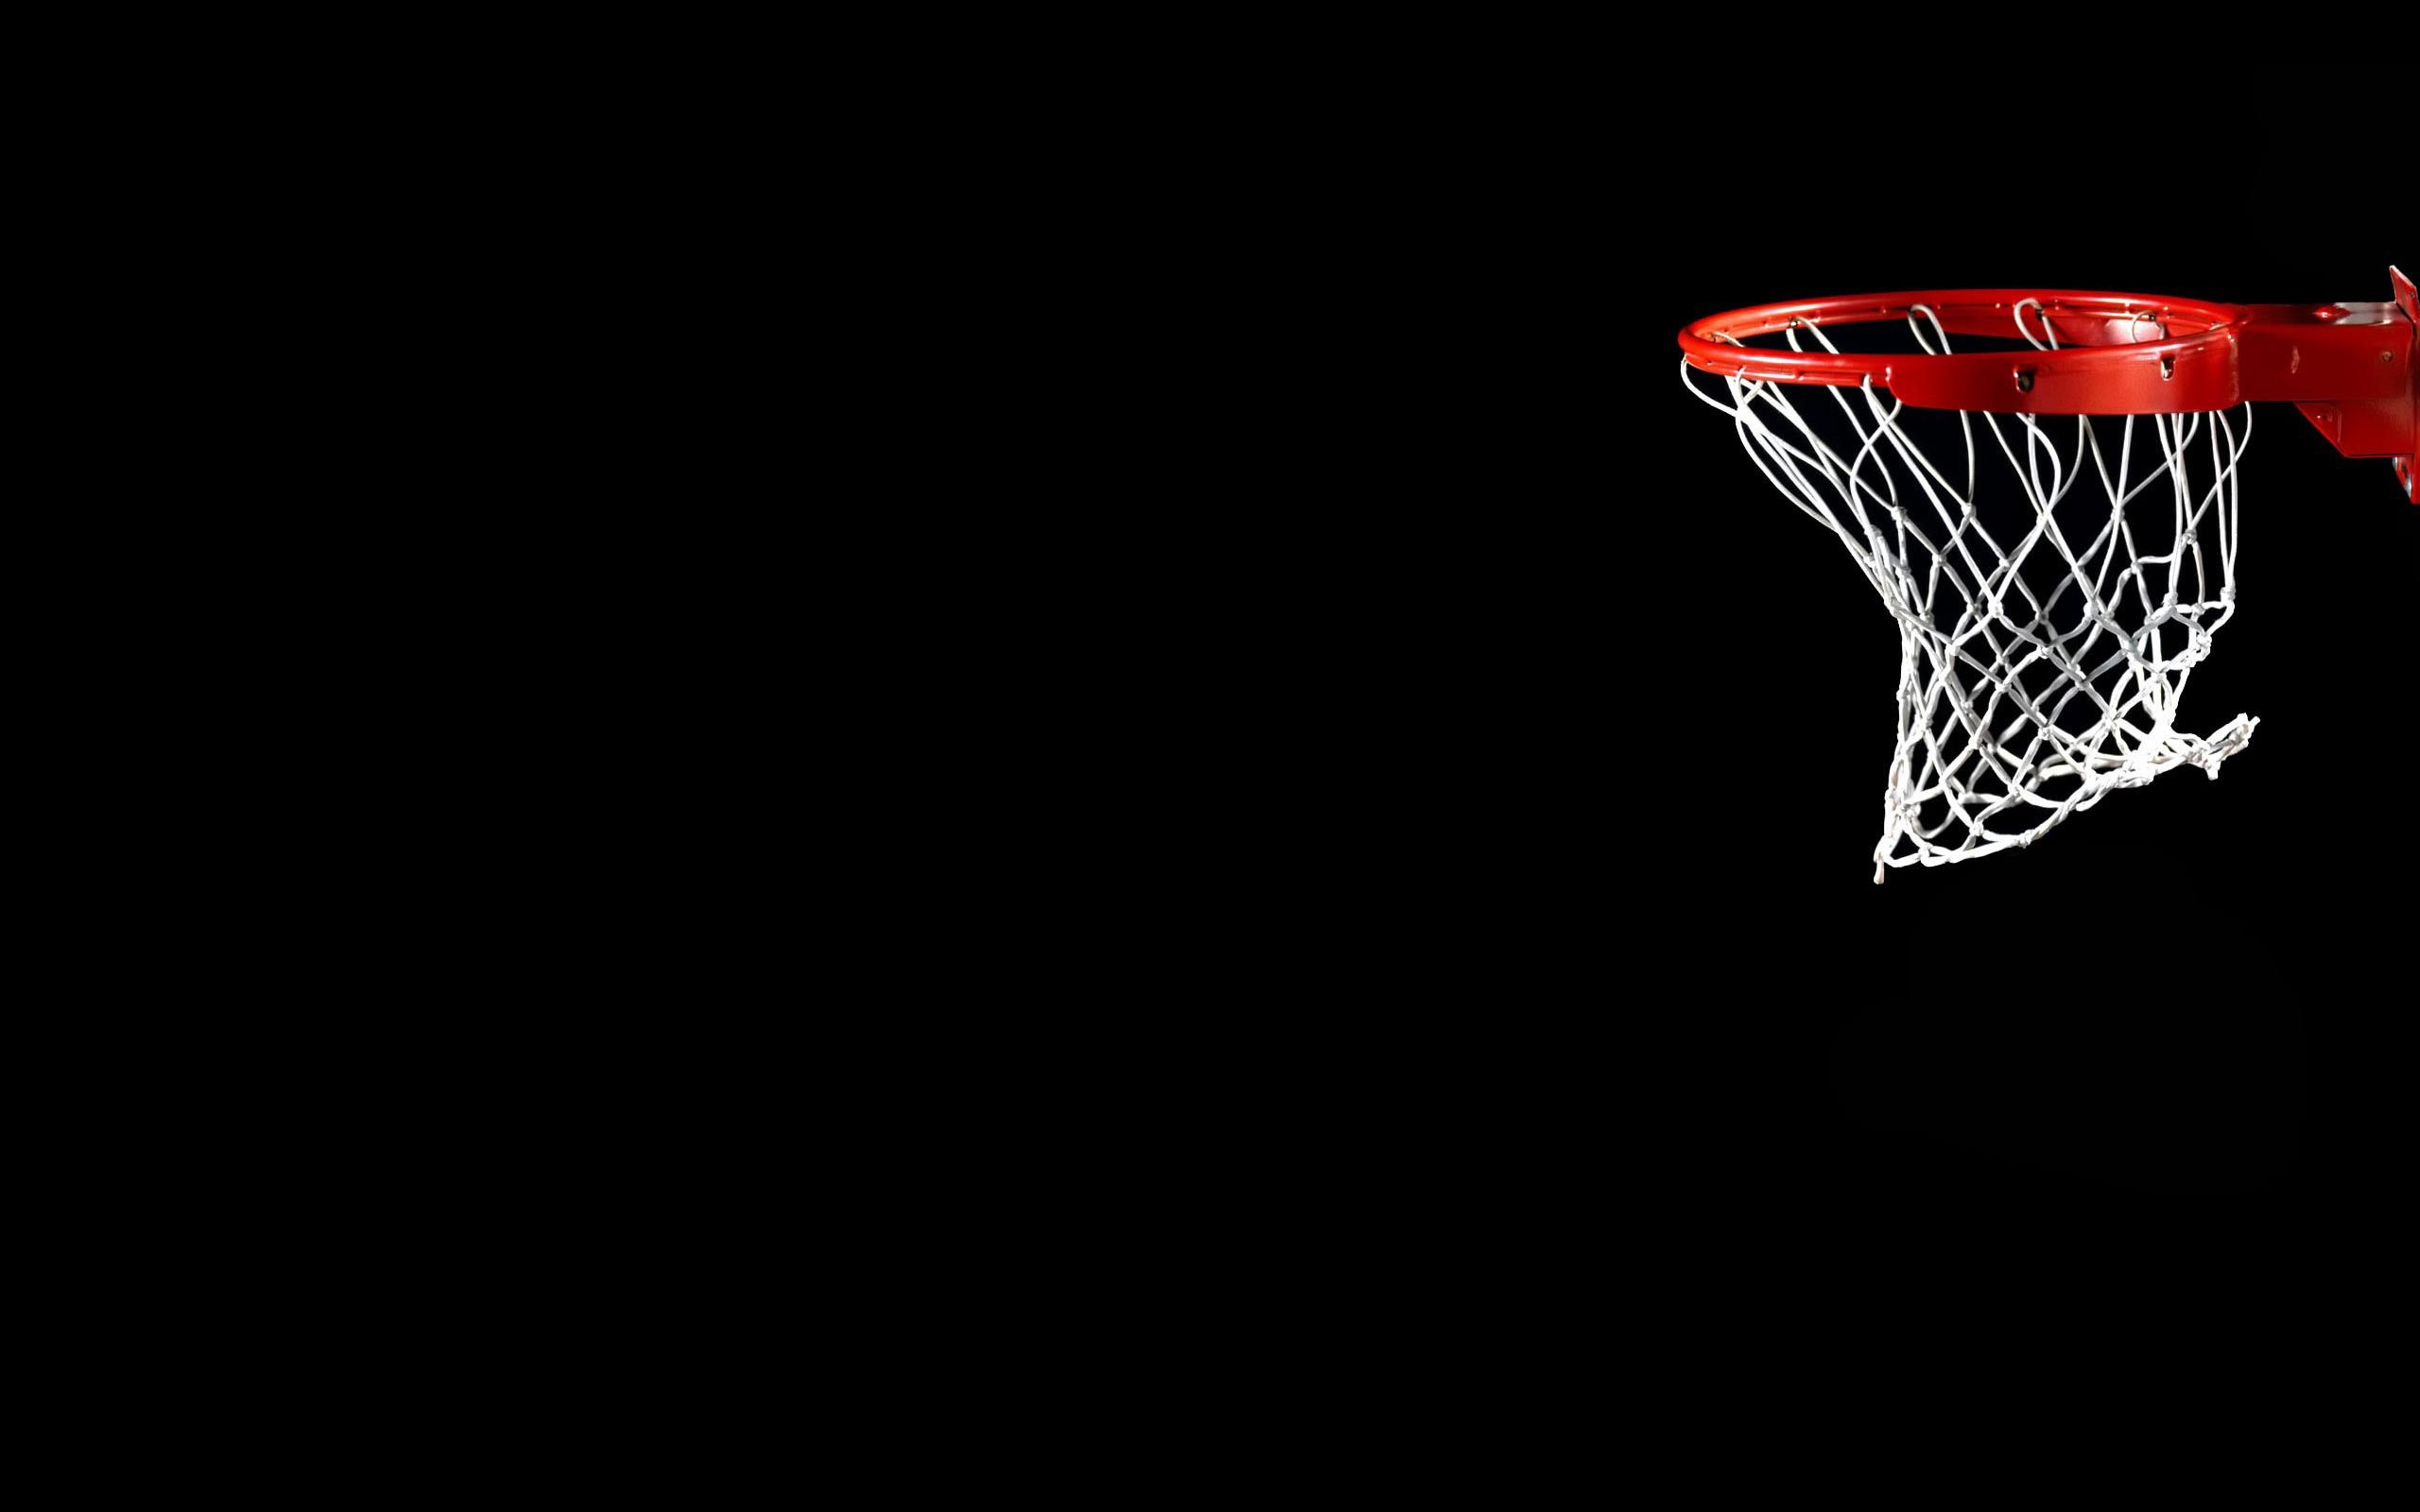 General 2560x1600 Basketball Nets Sports Simple Background Basketball Wallpaper Basketball Wallpapers Hd Basketball Ring